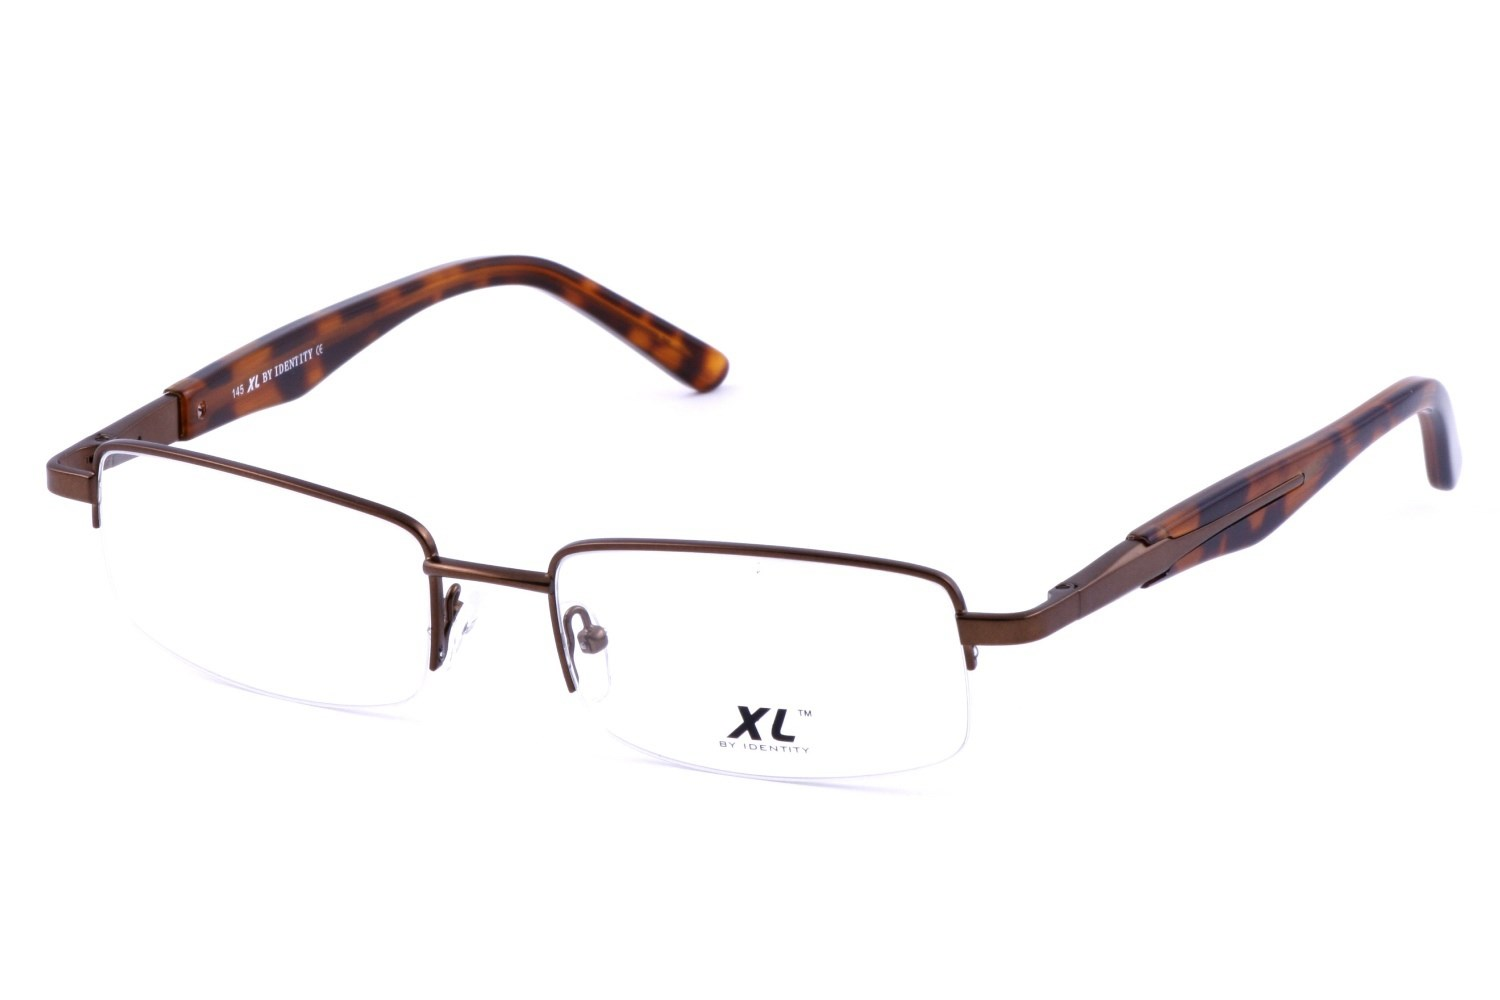 Identity XL PBX8503 Prescription Eyeglasses Frames